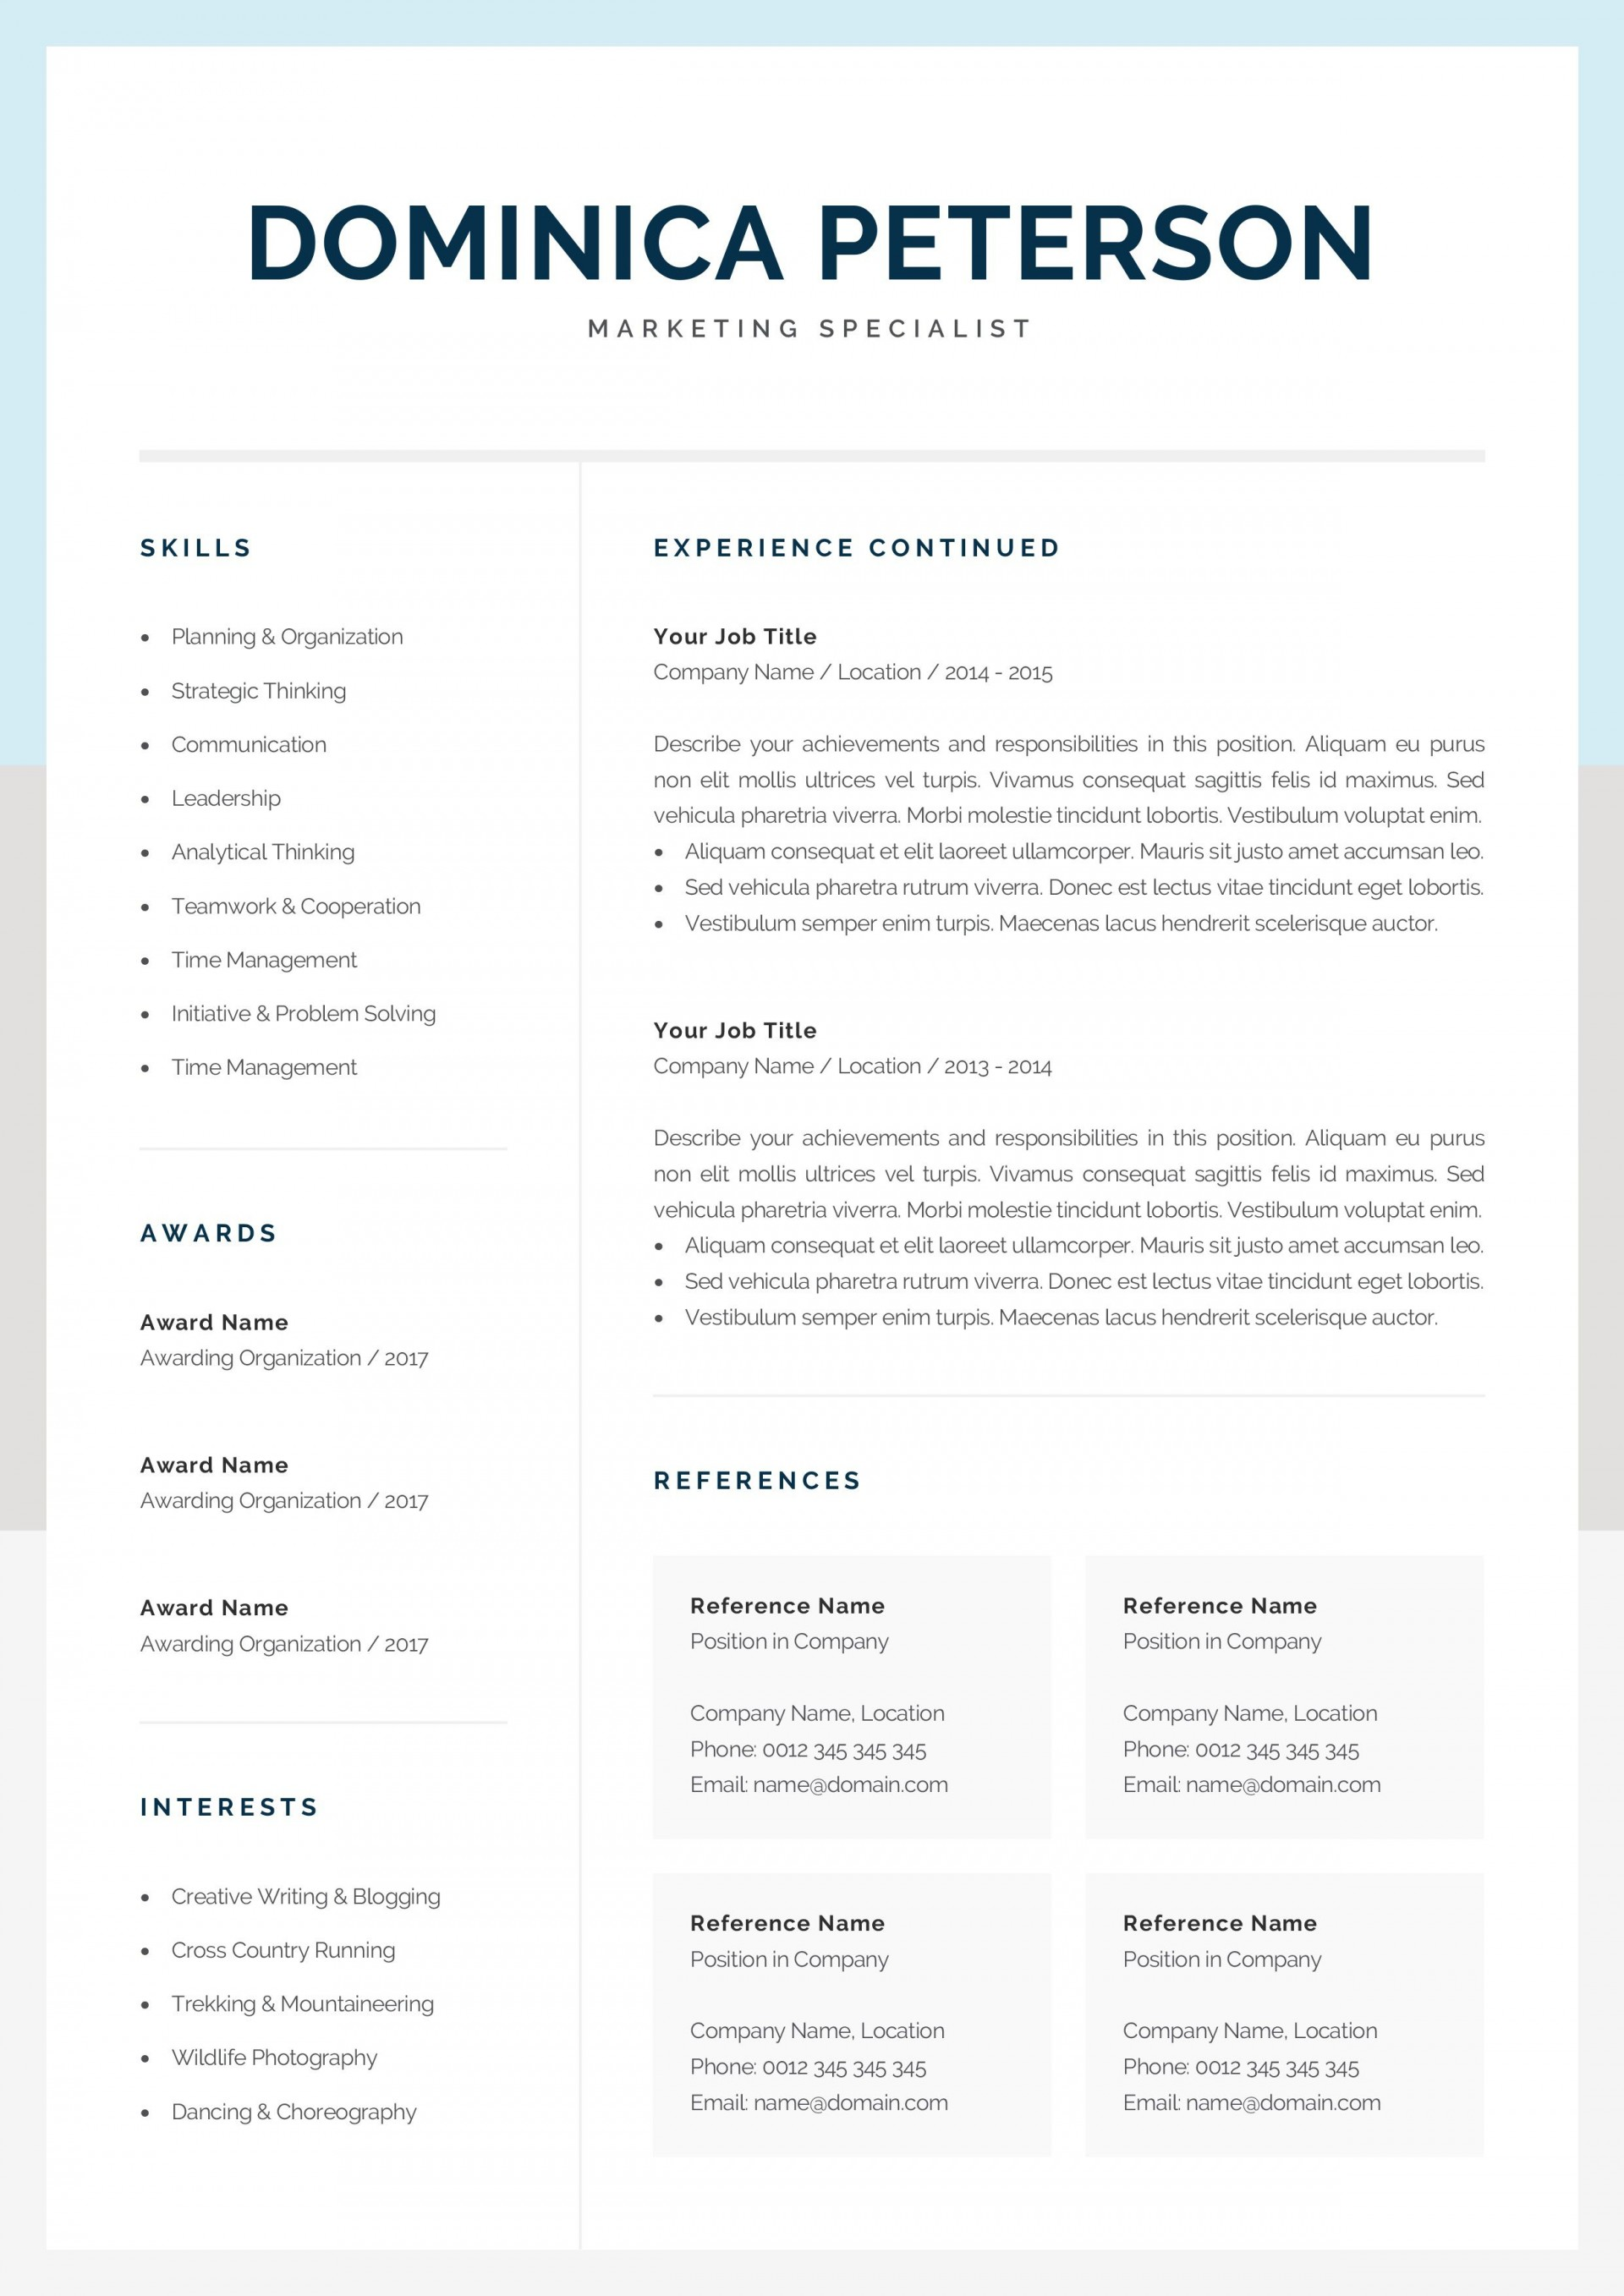 000 Unforgettable Resume Reference Template Microsoft Word Inspiration  List1920